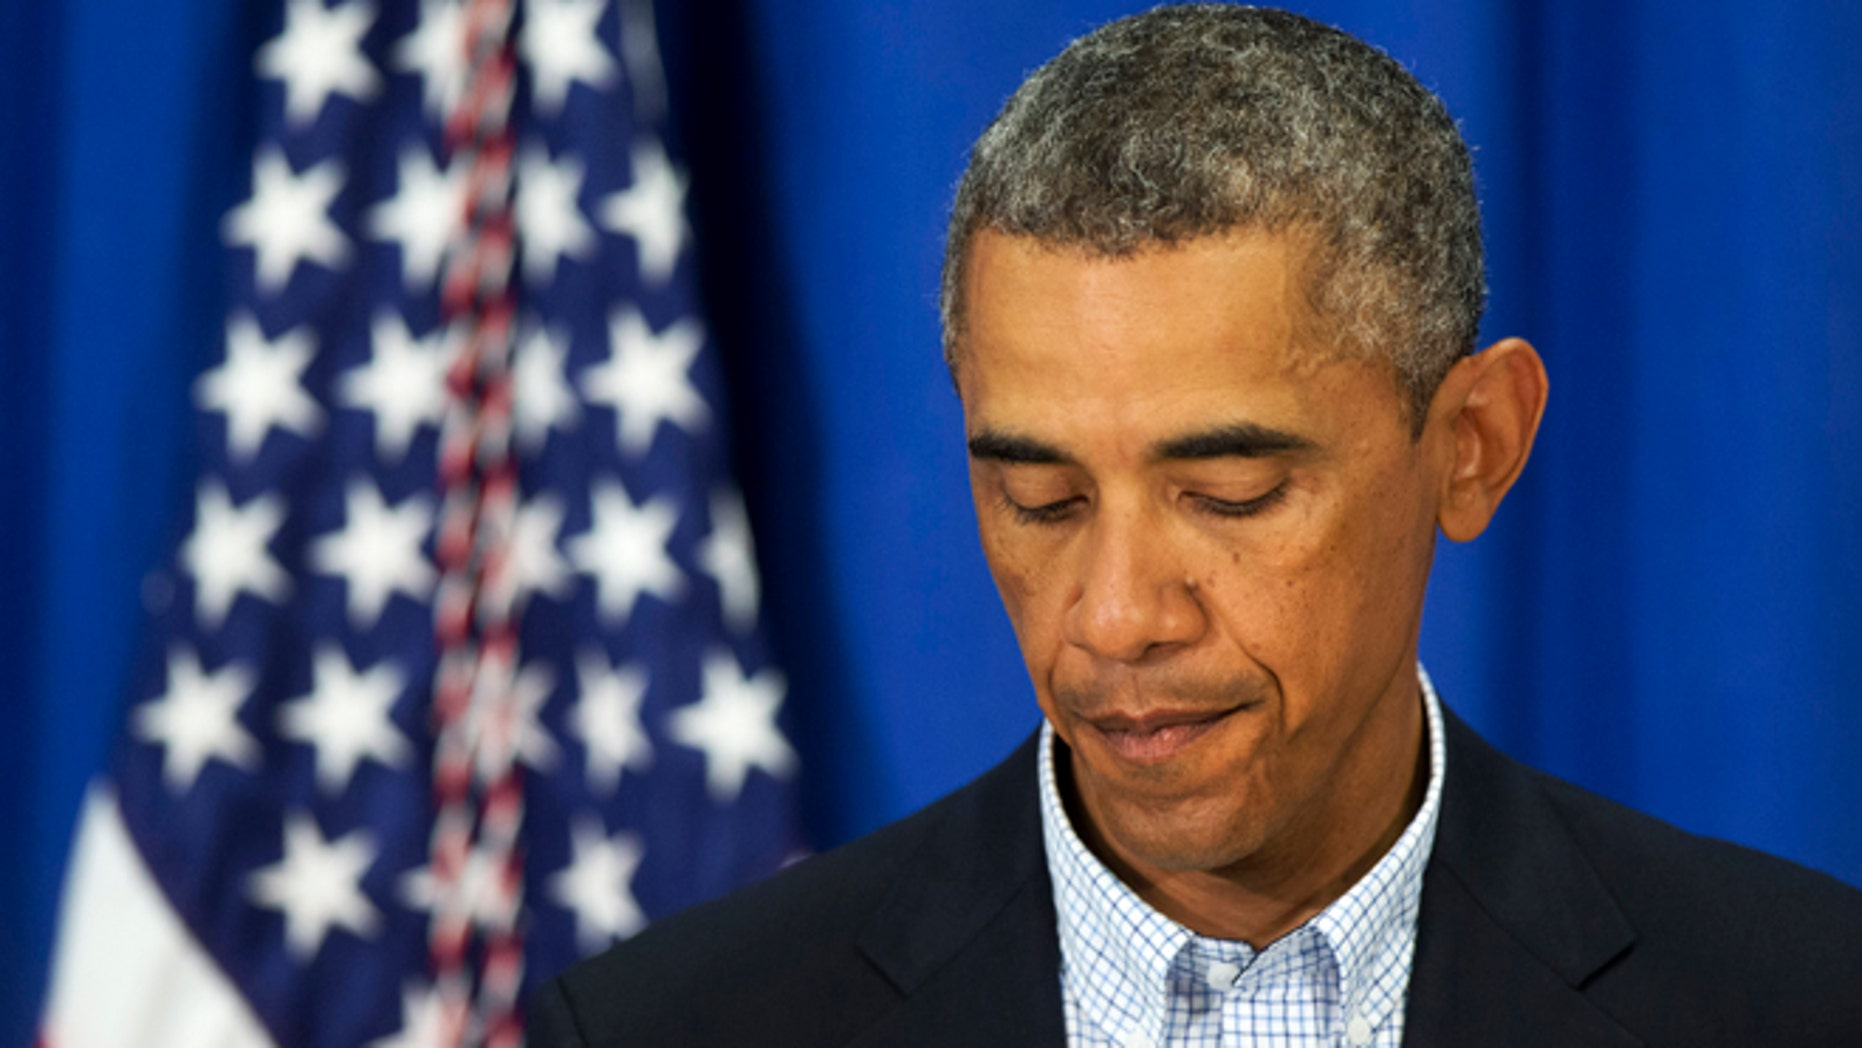 Aug. 14, 2014: President Obama pauses as he speaks about the situations in Iraq and in Ferguson, Mo. in Edgartown, Mass., during his family vacation on the island of Martha's Vineyard.